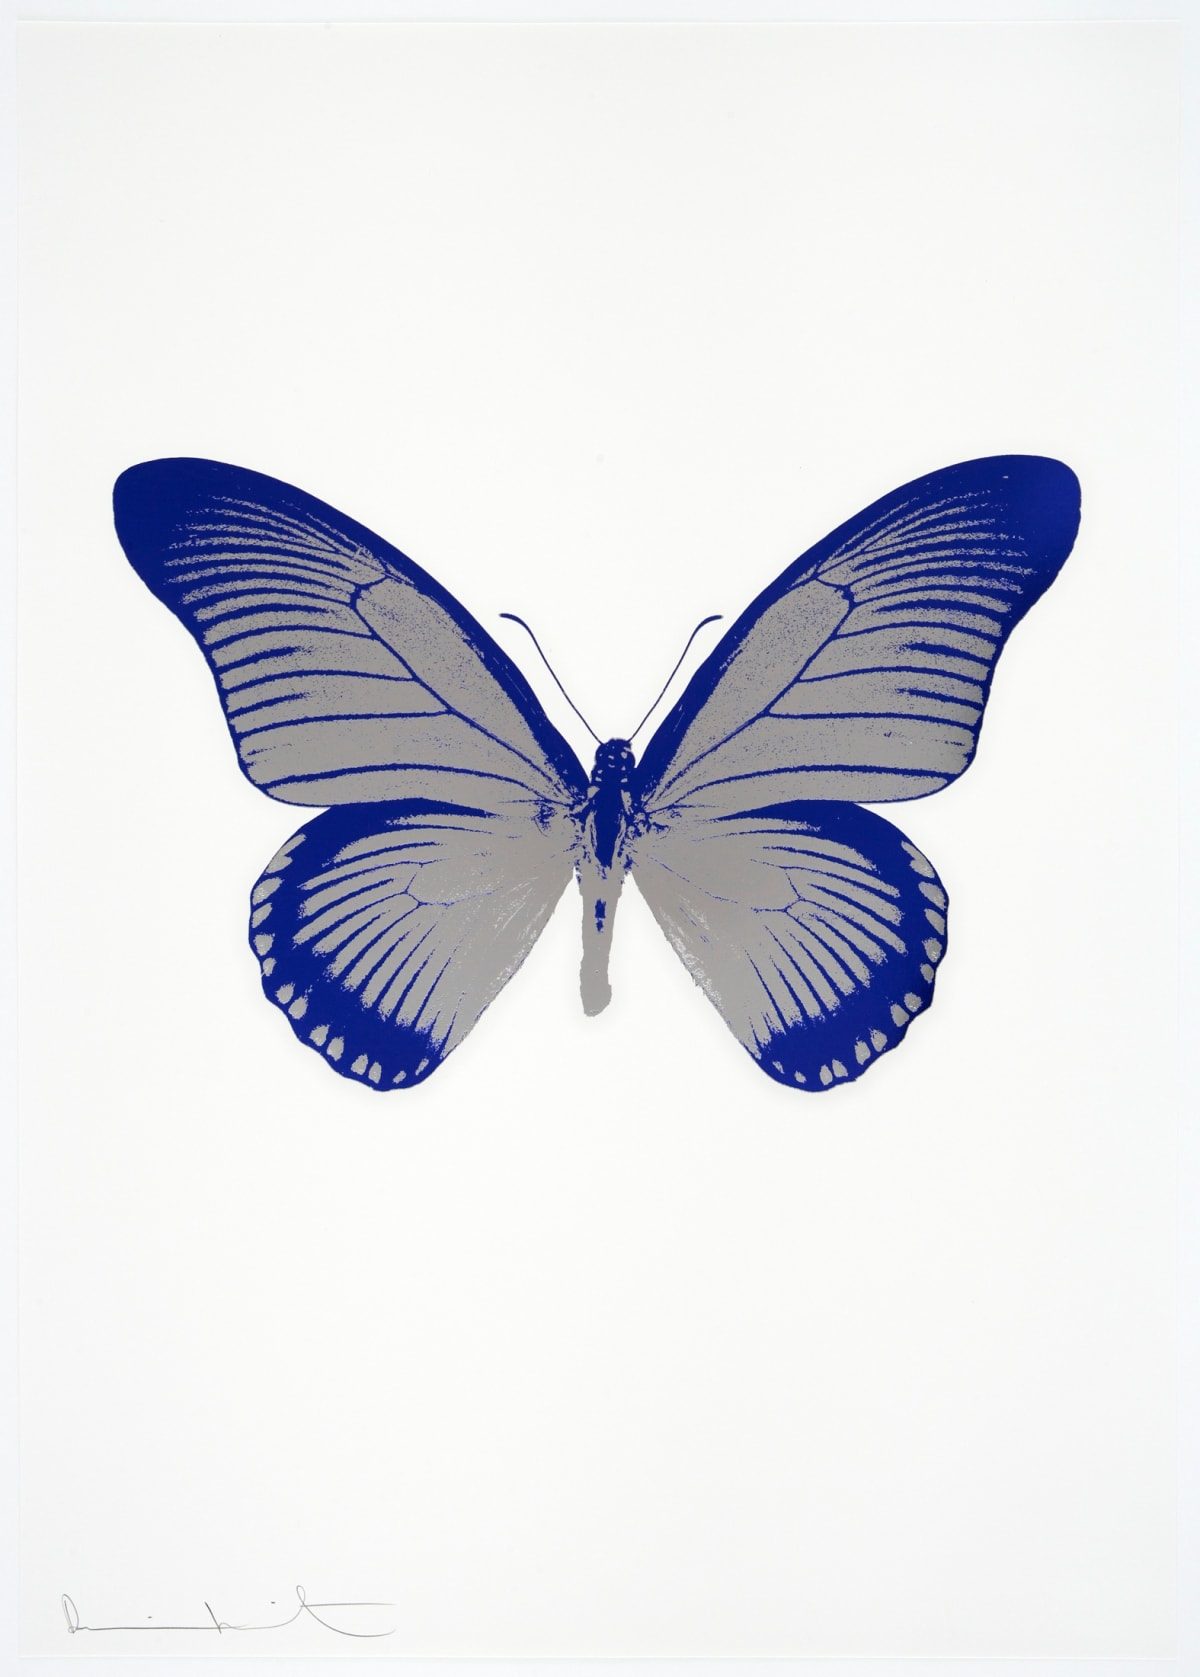 Damien Hirst The Souls IV - Silver Gloss/Westminster Blue Damien Hirst butterfly foil print for sale Damien Hirst print for sale , 2010 2 colour foil block on 300gsm Arches 88 archival paper. Signed and numbered. Published by Paul Stolper and Other Criteria 72 x 51cm OC7988 / 1418-11 Edition of 15